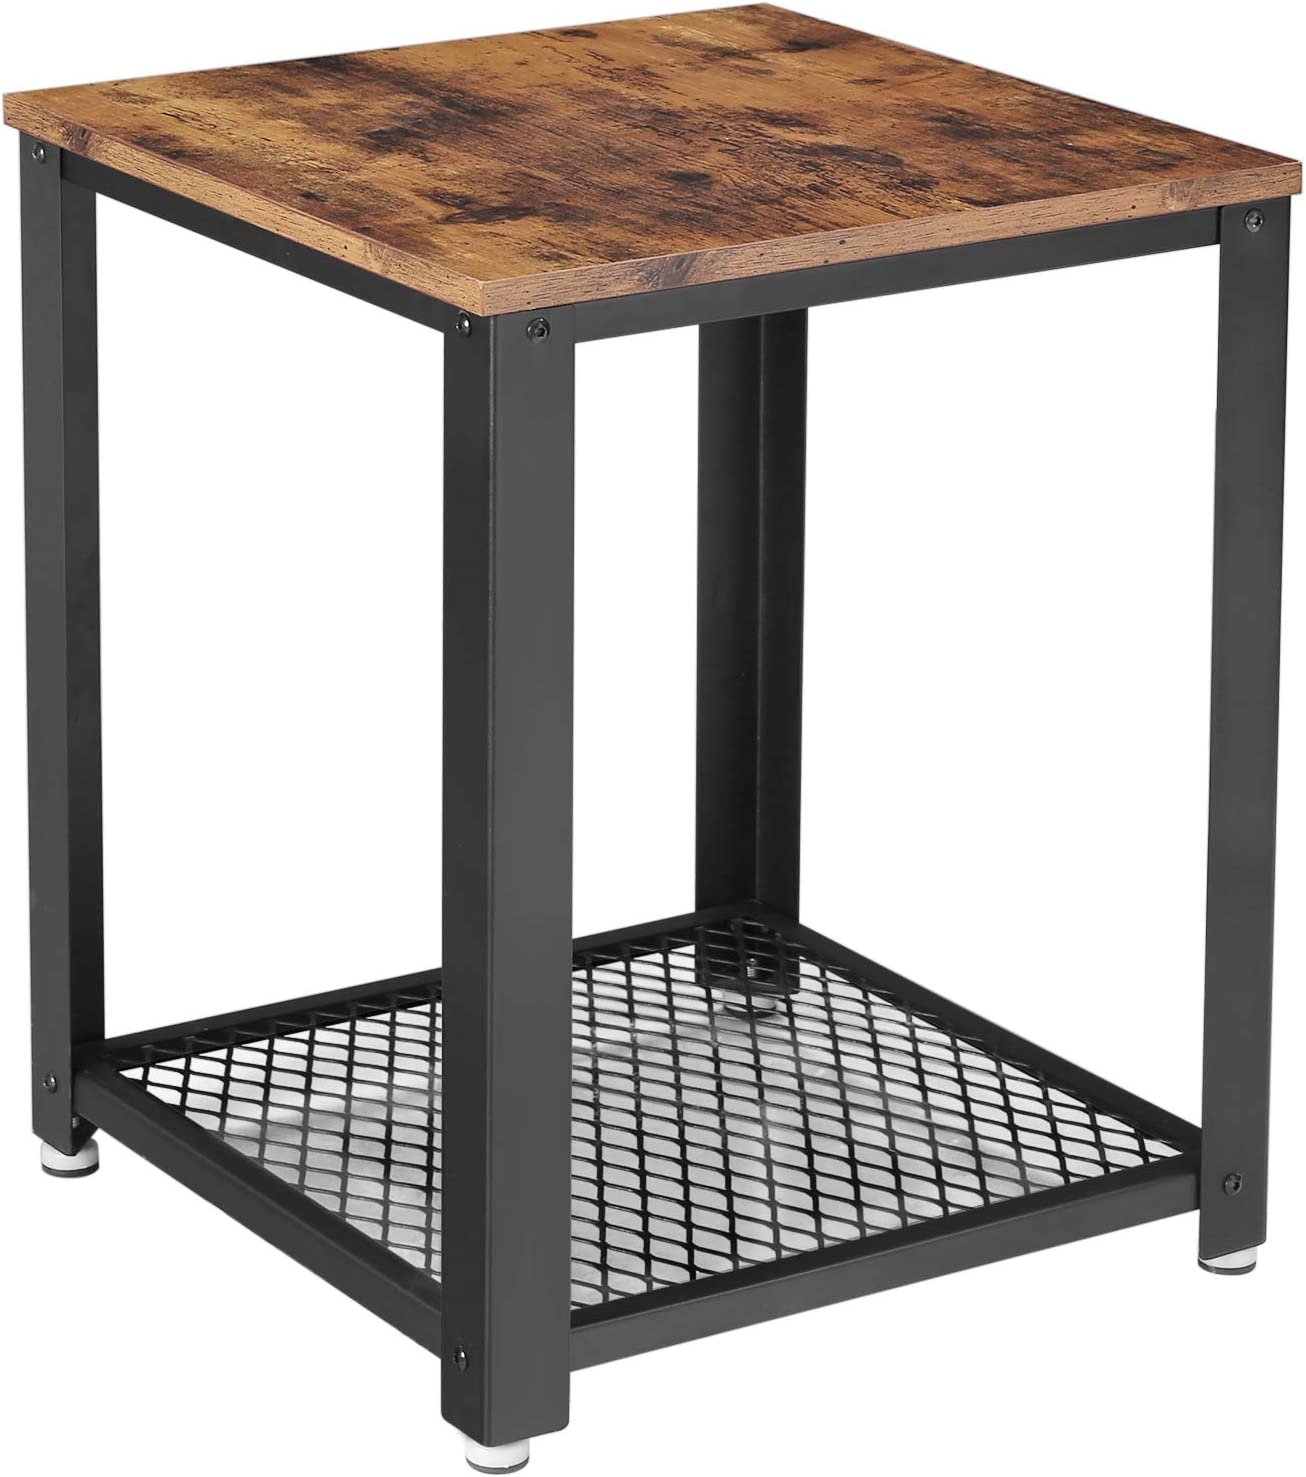 VASAGLE Industrial End Table, 2-Tier Side Table with Storage Shelf, Sturdy, Easy Assembly, Wood Look Accent Furniture, with Metal Frame, Rustic Brown ULET41X: Kitchen & Dining